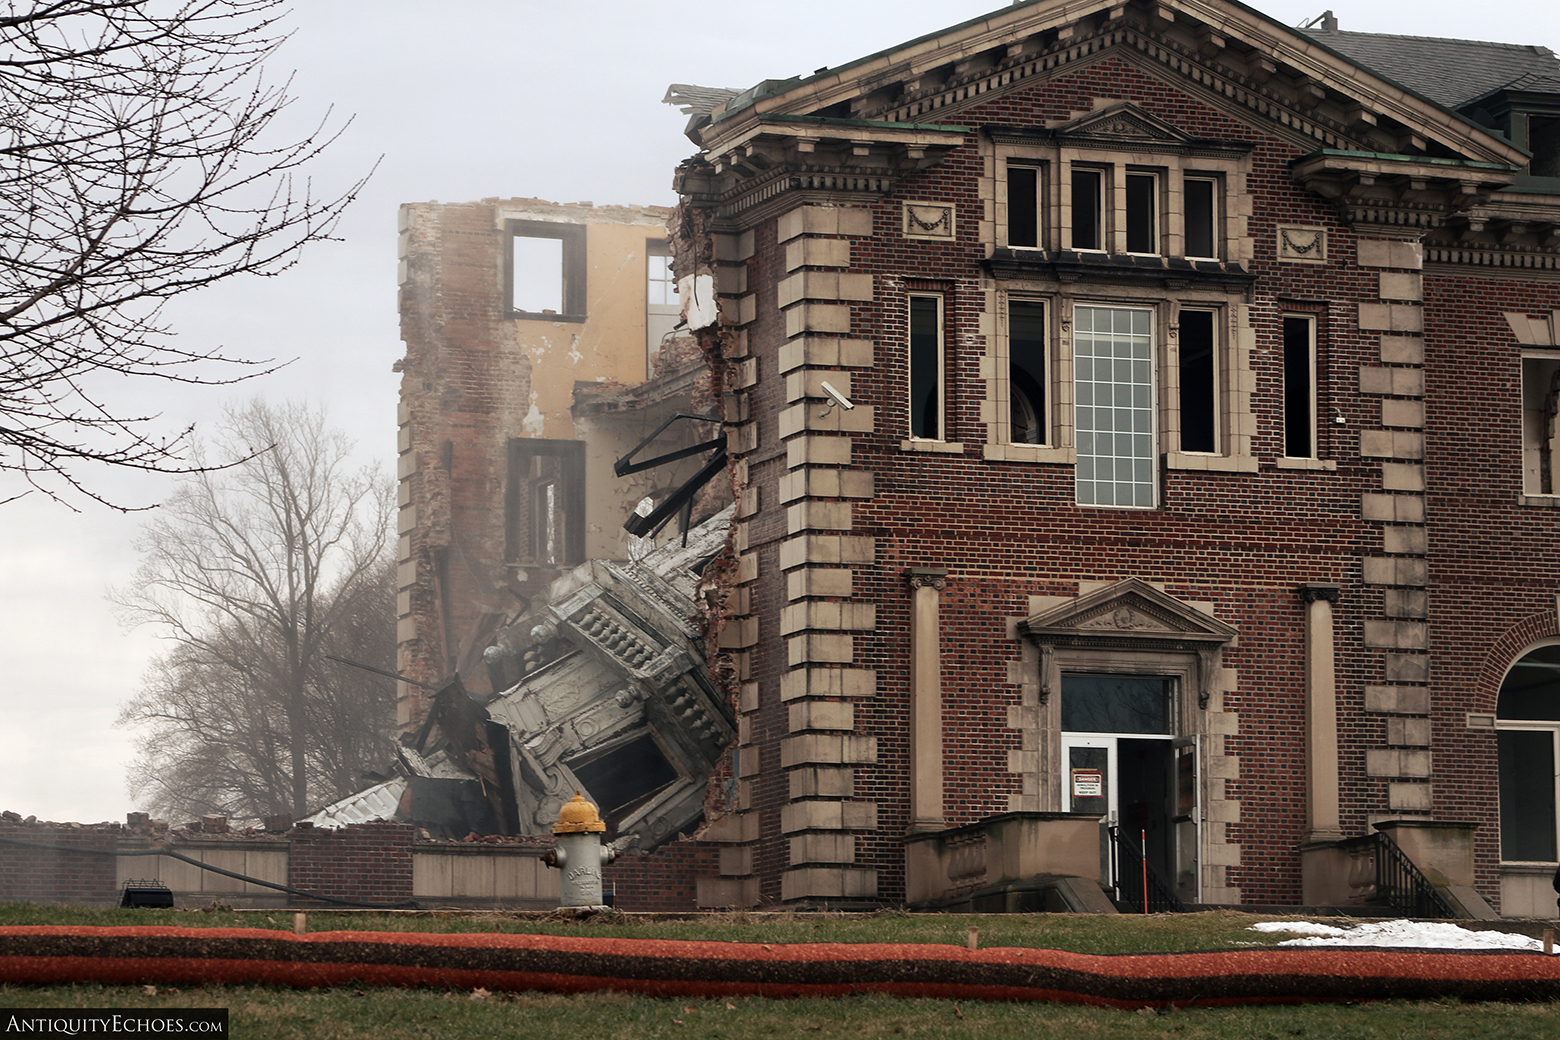 Allentown State Hospital - Demolition - Spire Collapsed into Lobby